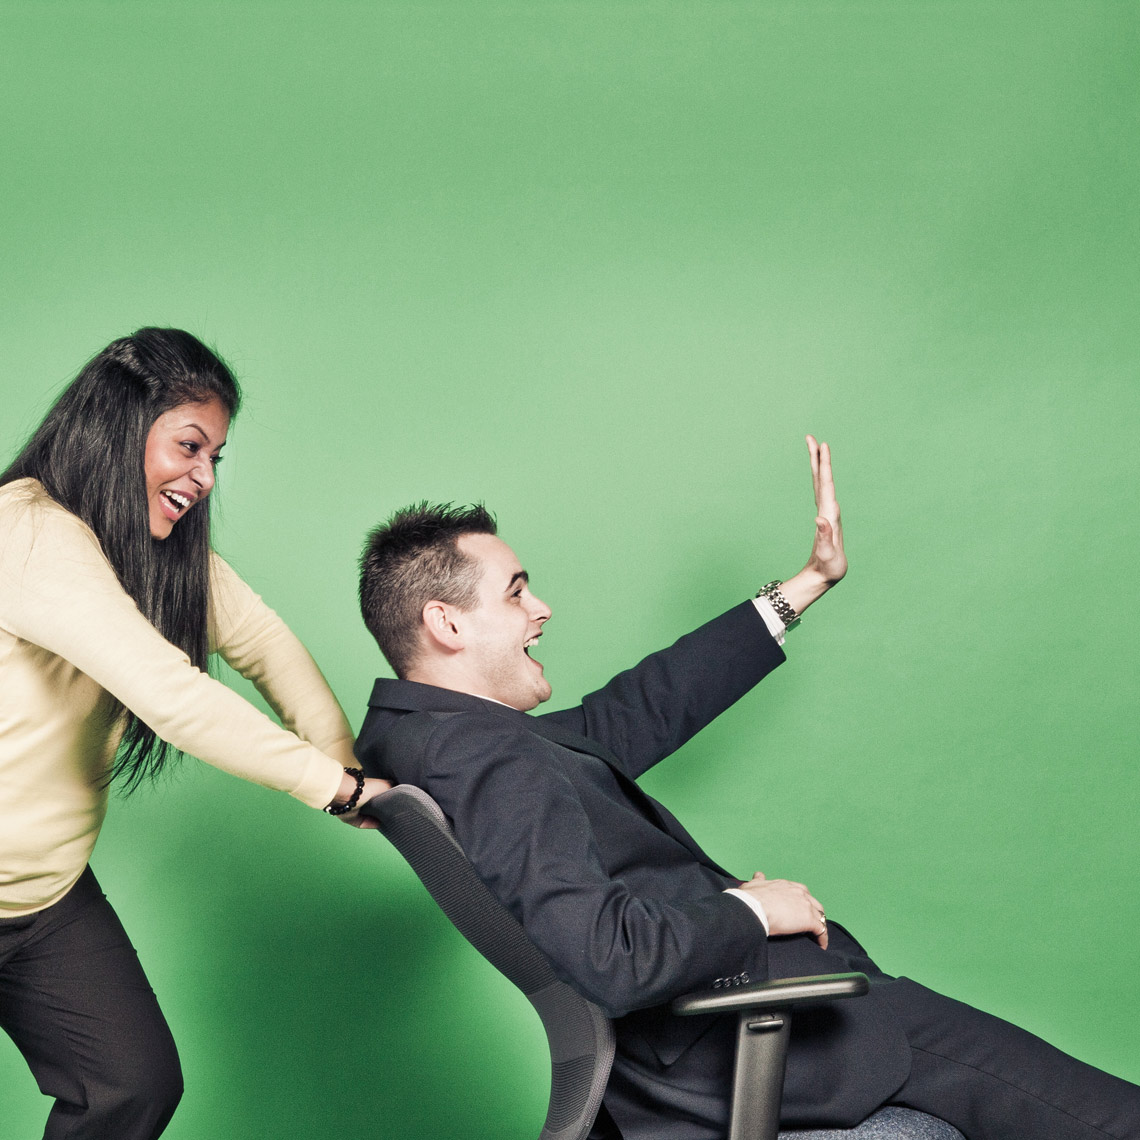 woman pushing man in chair